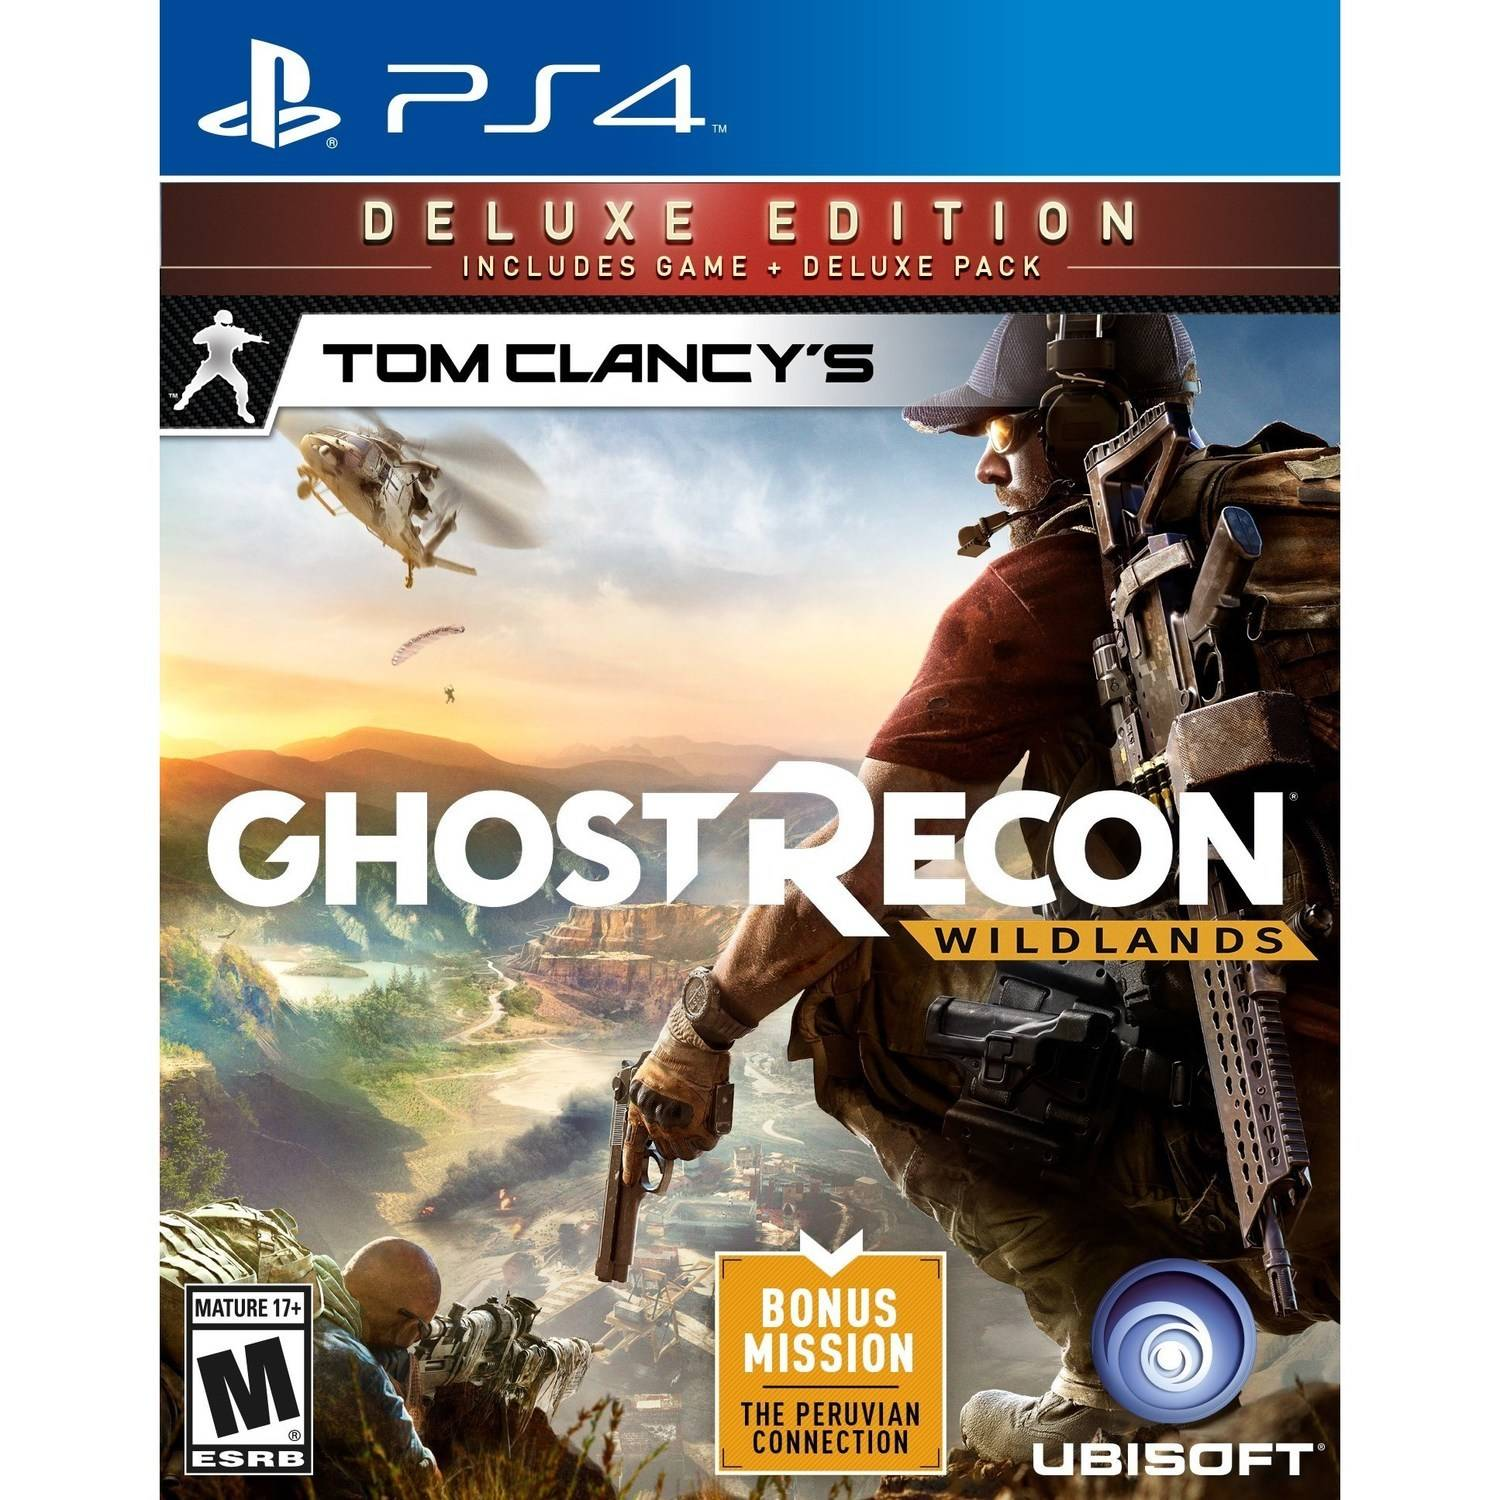 Tom Clancy's Ghost Recon Wildlands Deluxe Edition (PS4)